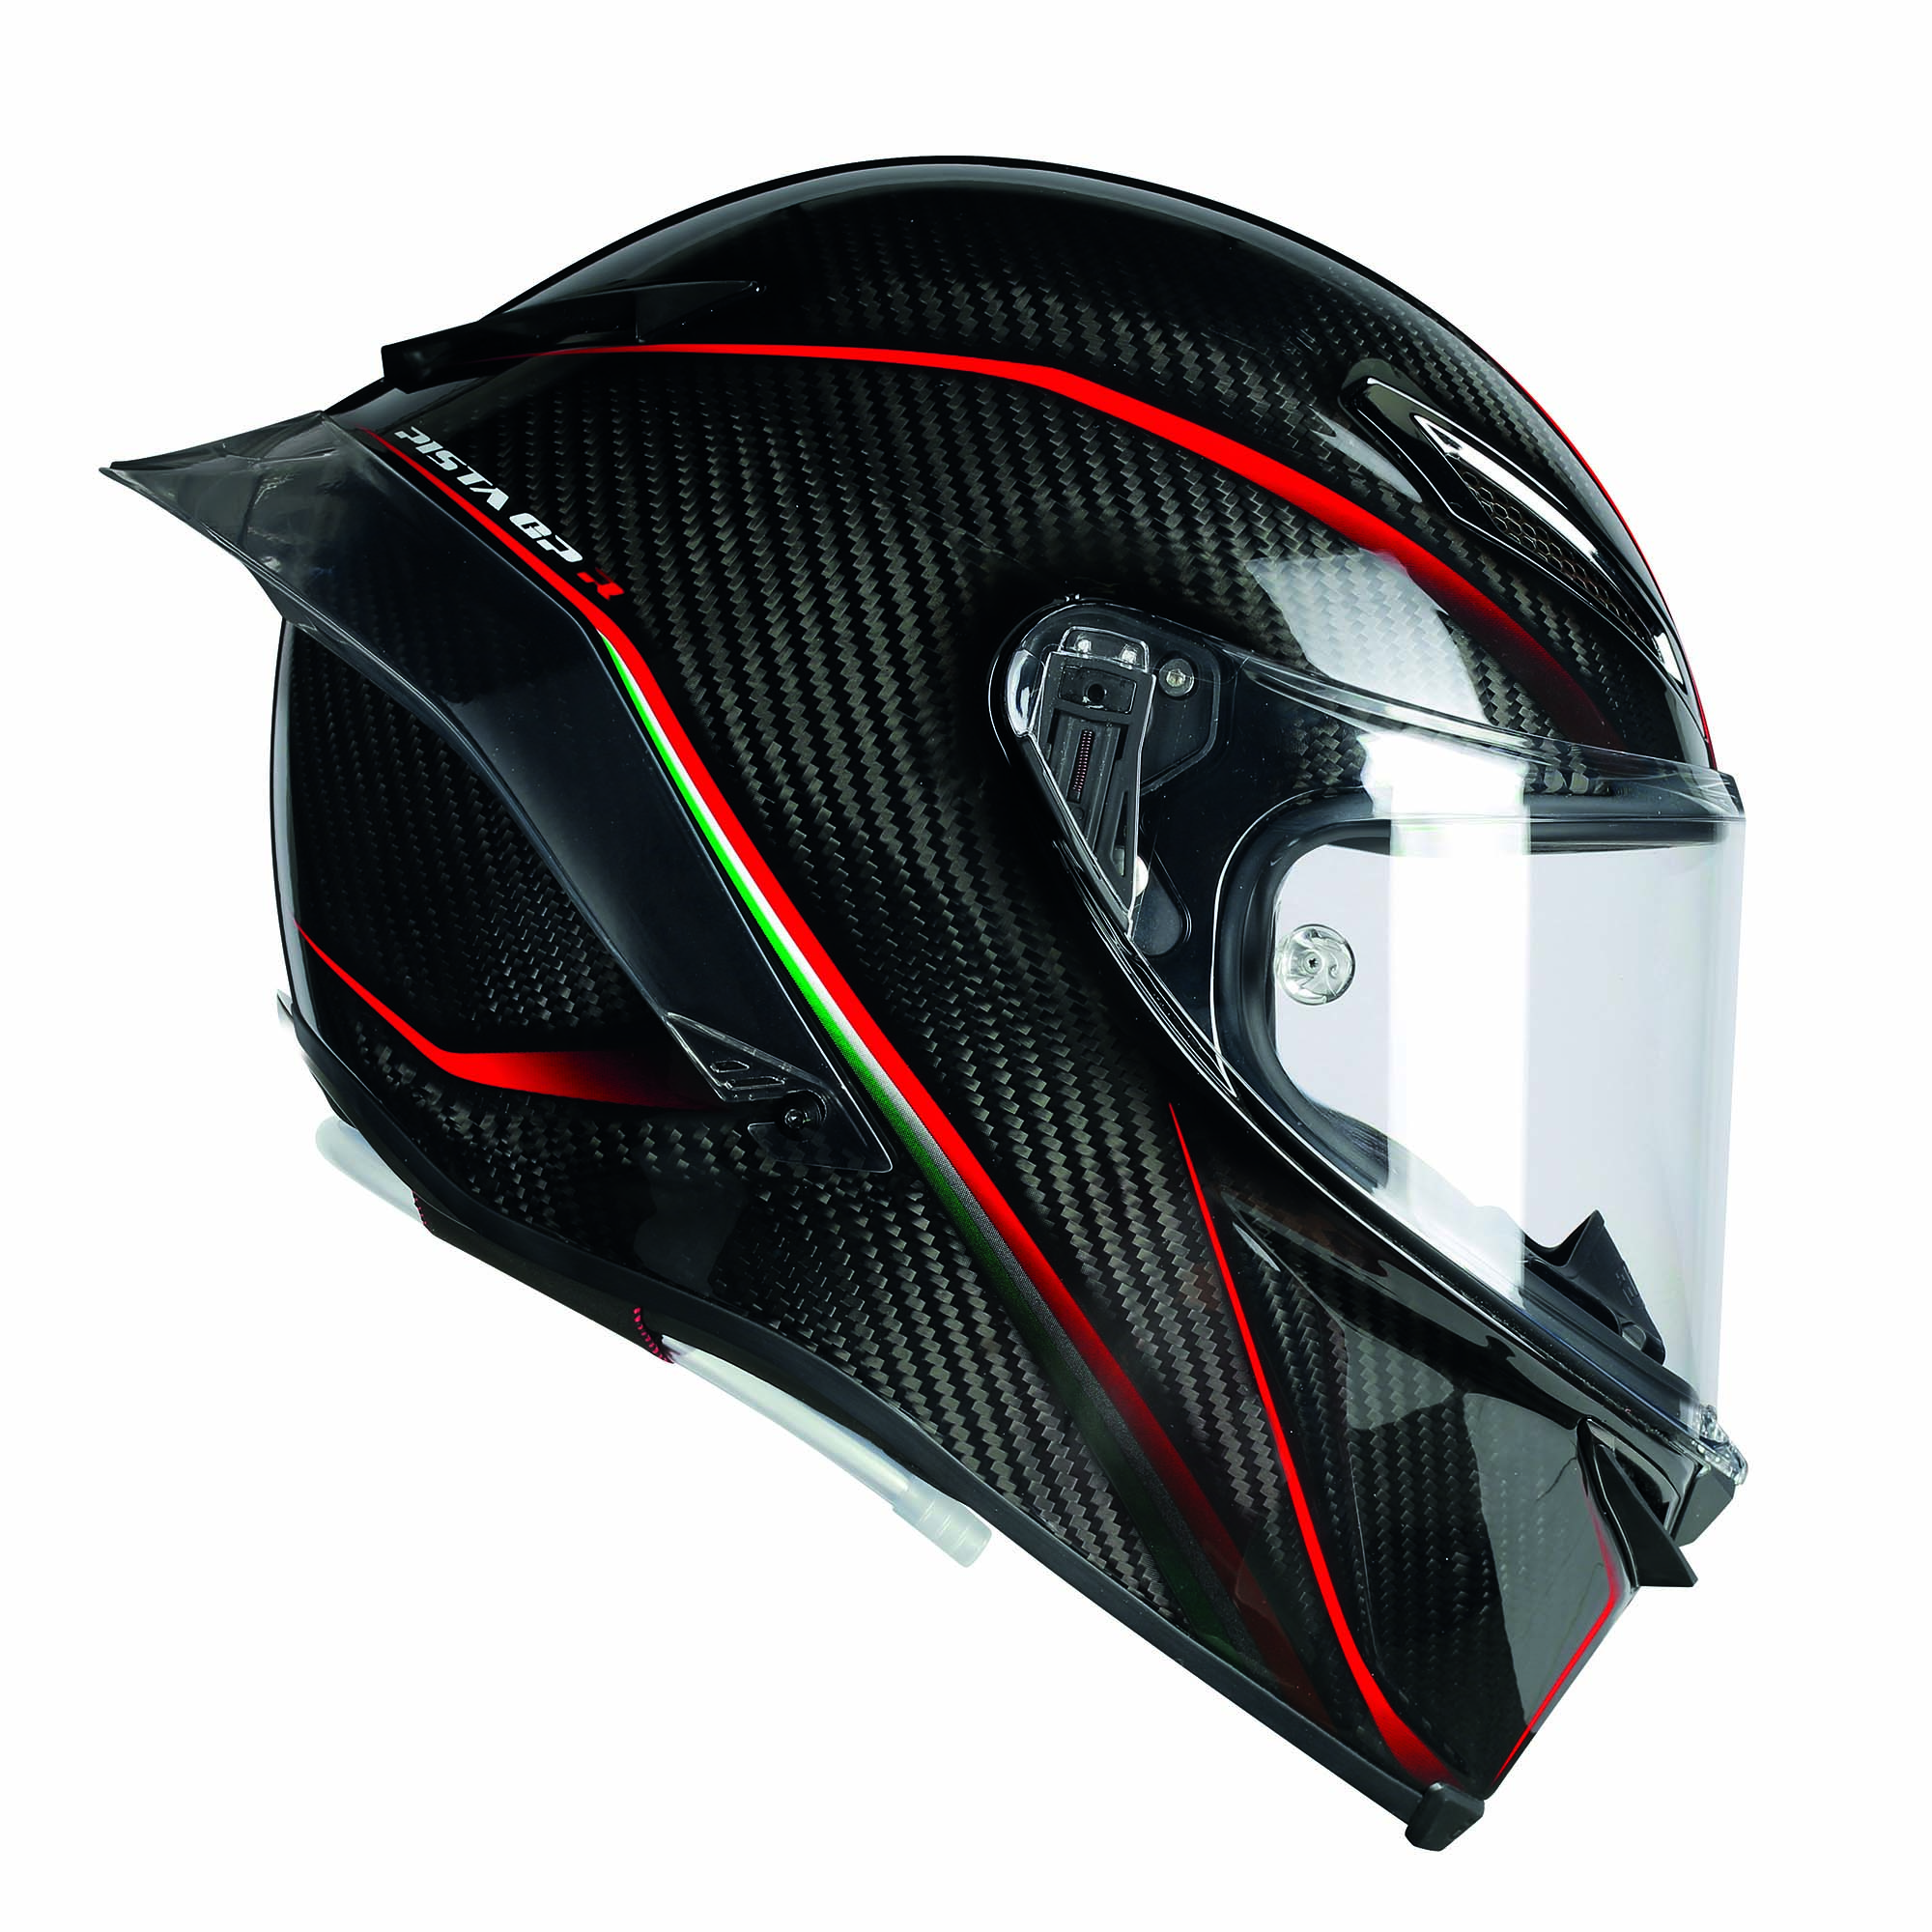 Alpinestars Motorcycle Jacket >> AGV Pista GP R Helmet Debuts with Hydration Channel